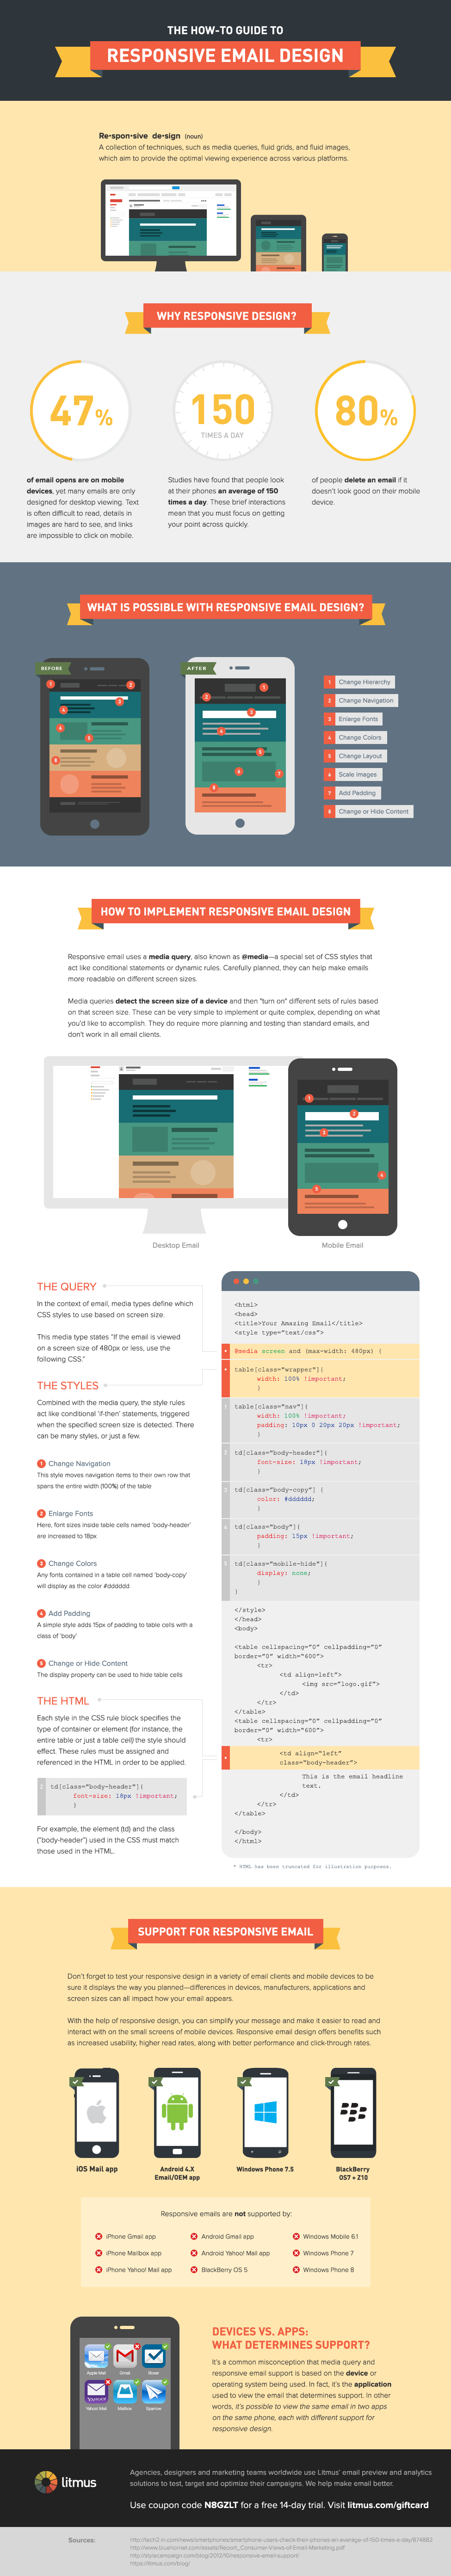 The How-To Guide to Responsive Email Design